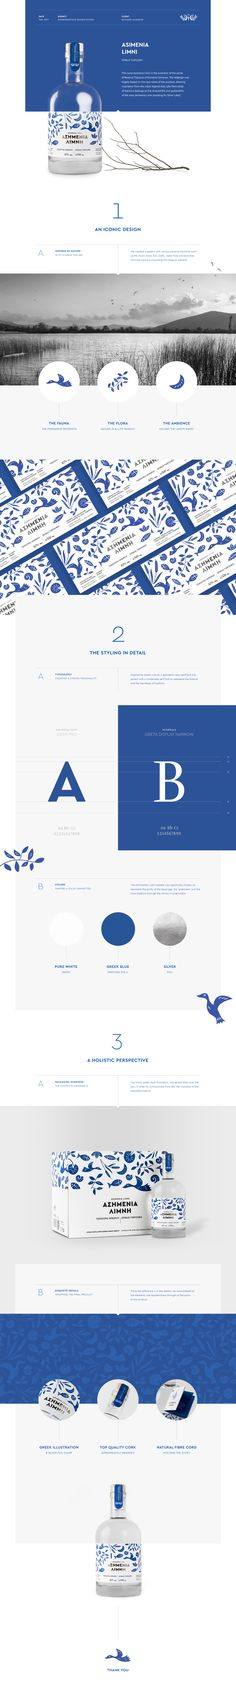 Asimenia Limni on Behance